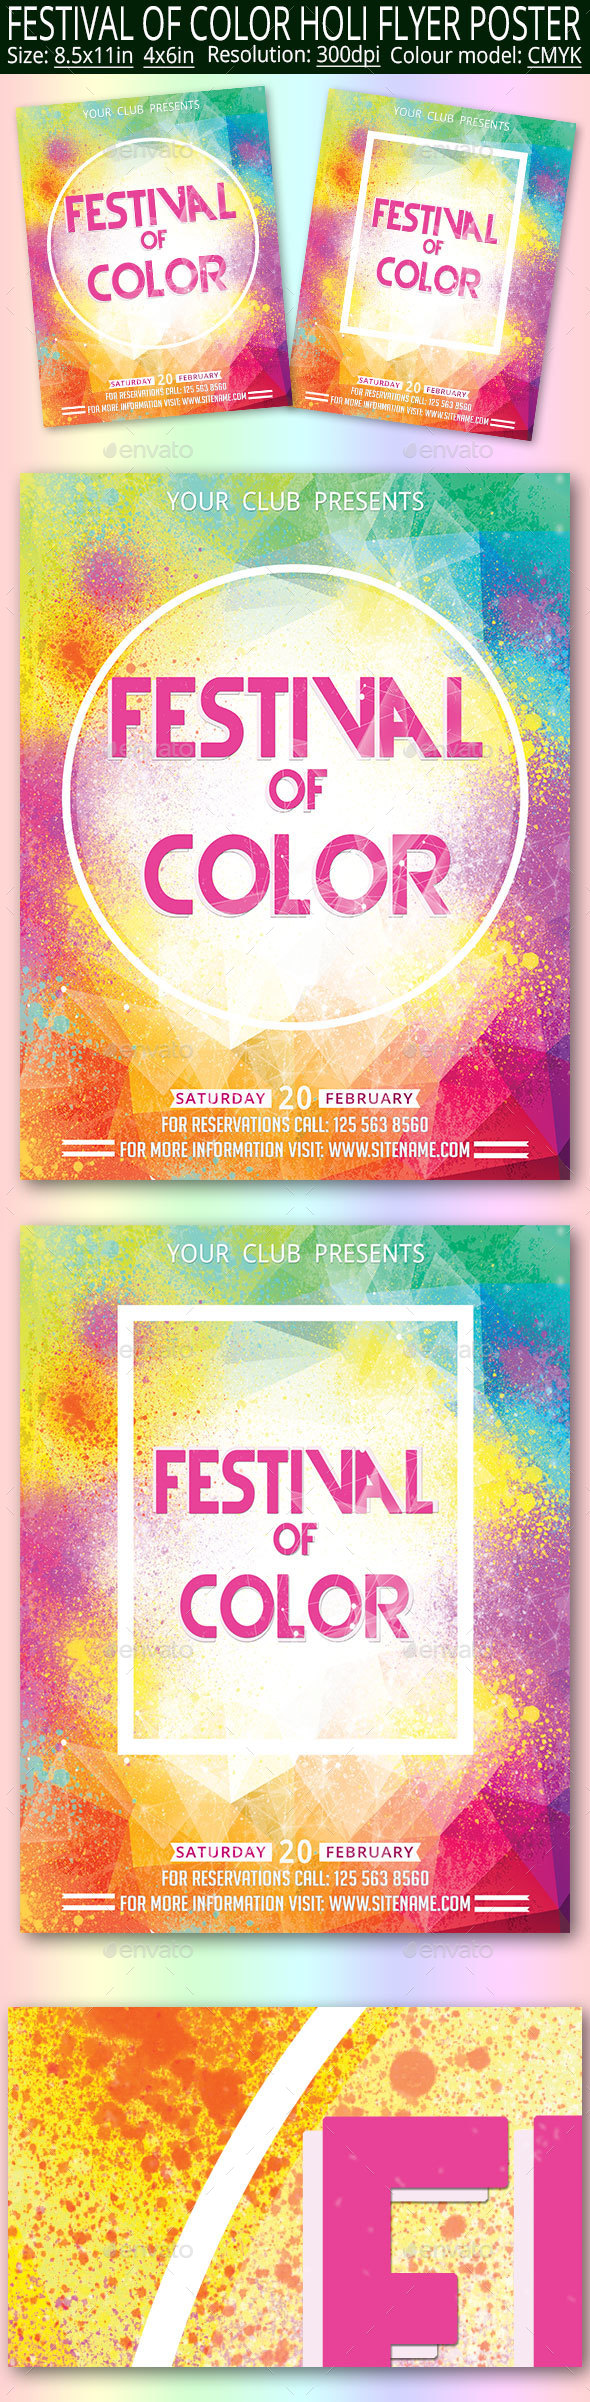 Festival Of Color Holi Flyer Poster - Clubs & Parties Events